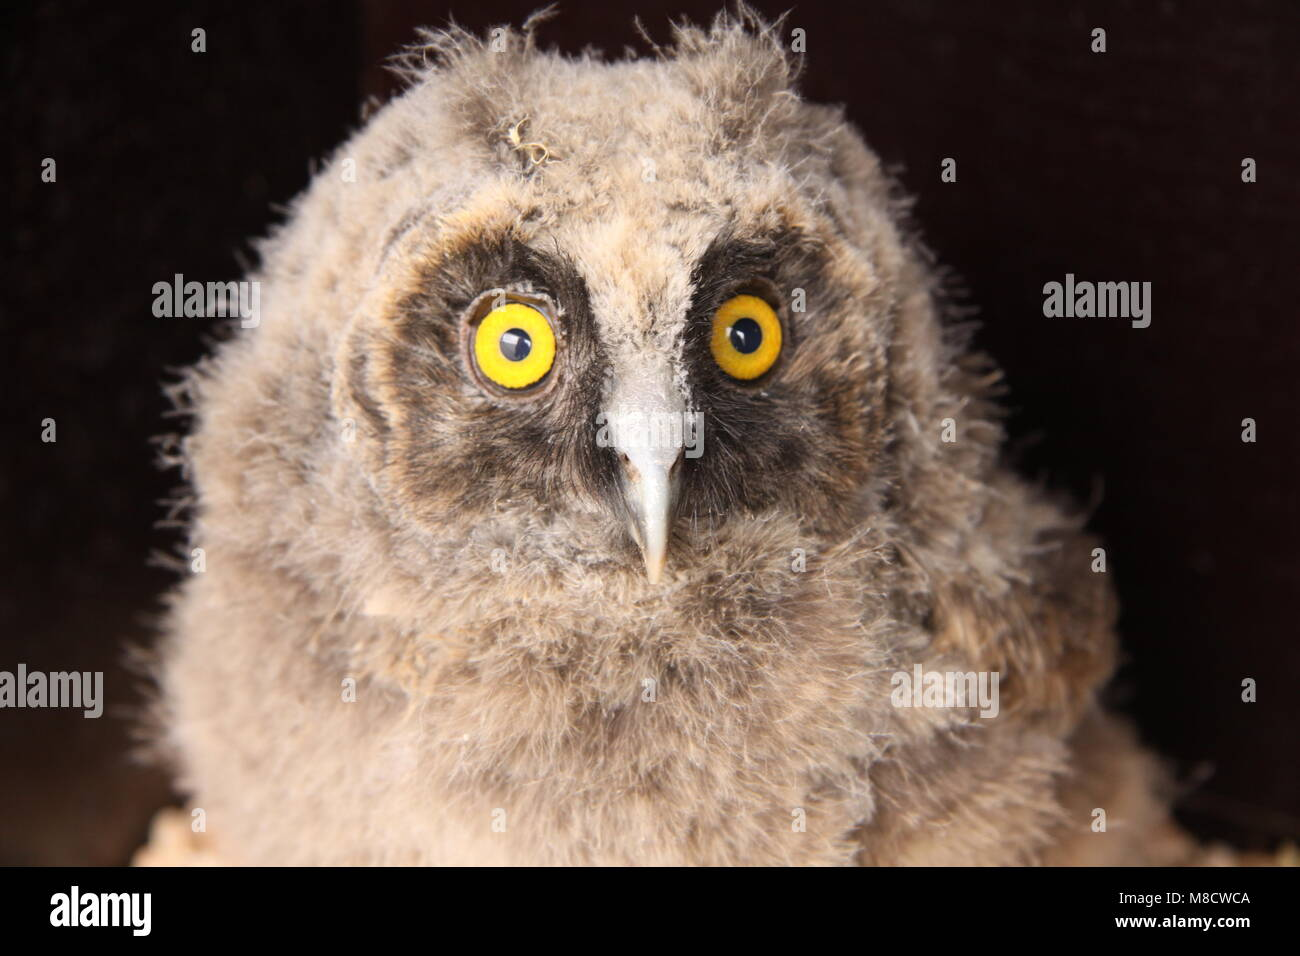 Ransuil jong zittend; Long-eared Owl juvenile perched - Stock Image